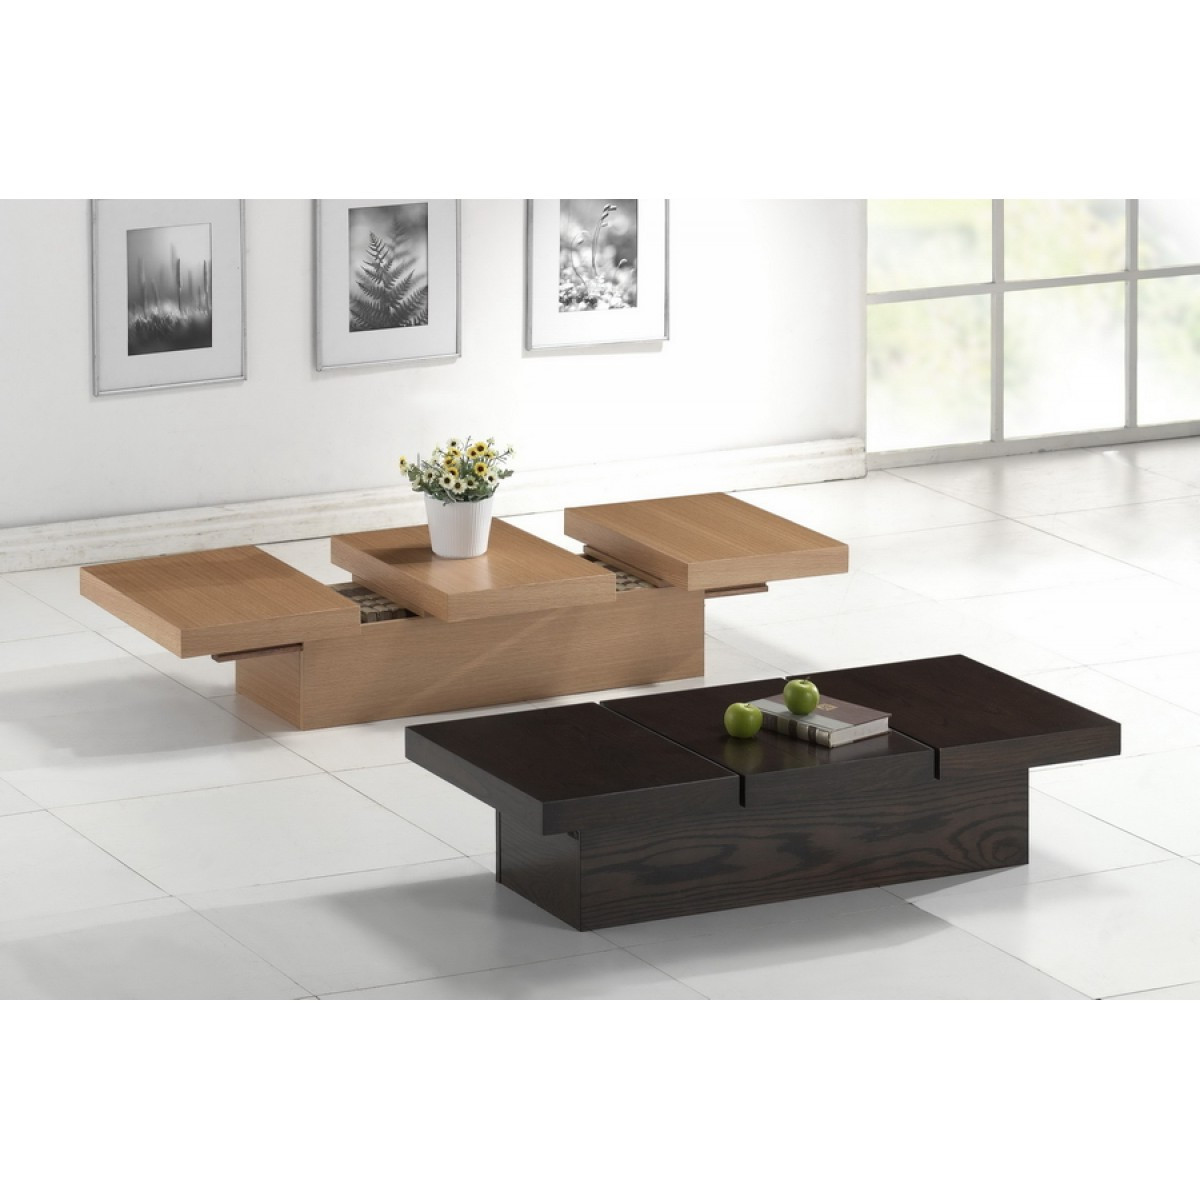 2 chairs and table set living room pool chair lift modern coffee tables sets roy home design